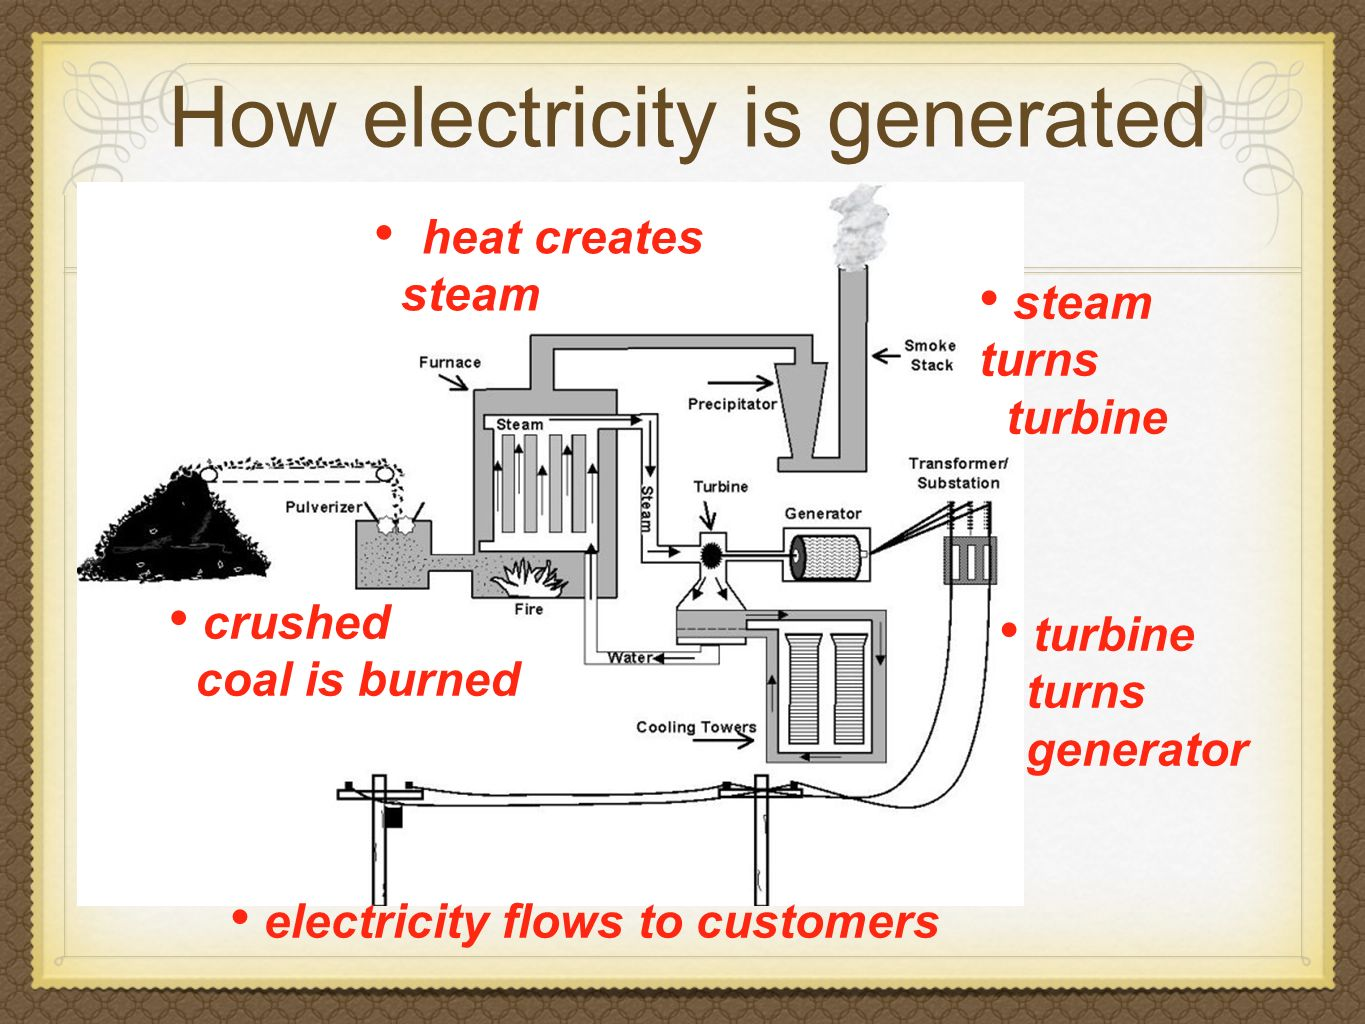 How electricity is generated heat creates steam crushed coal is burned steam turns turbine turns generator electricity flows to customers